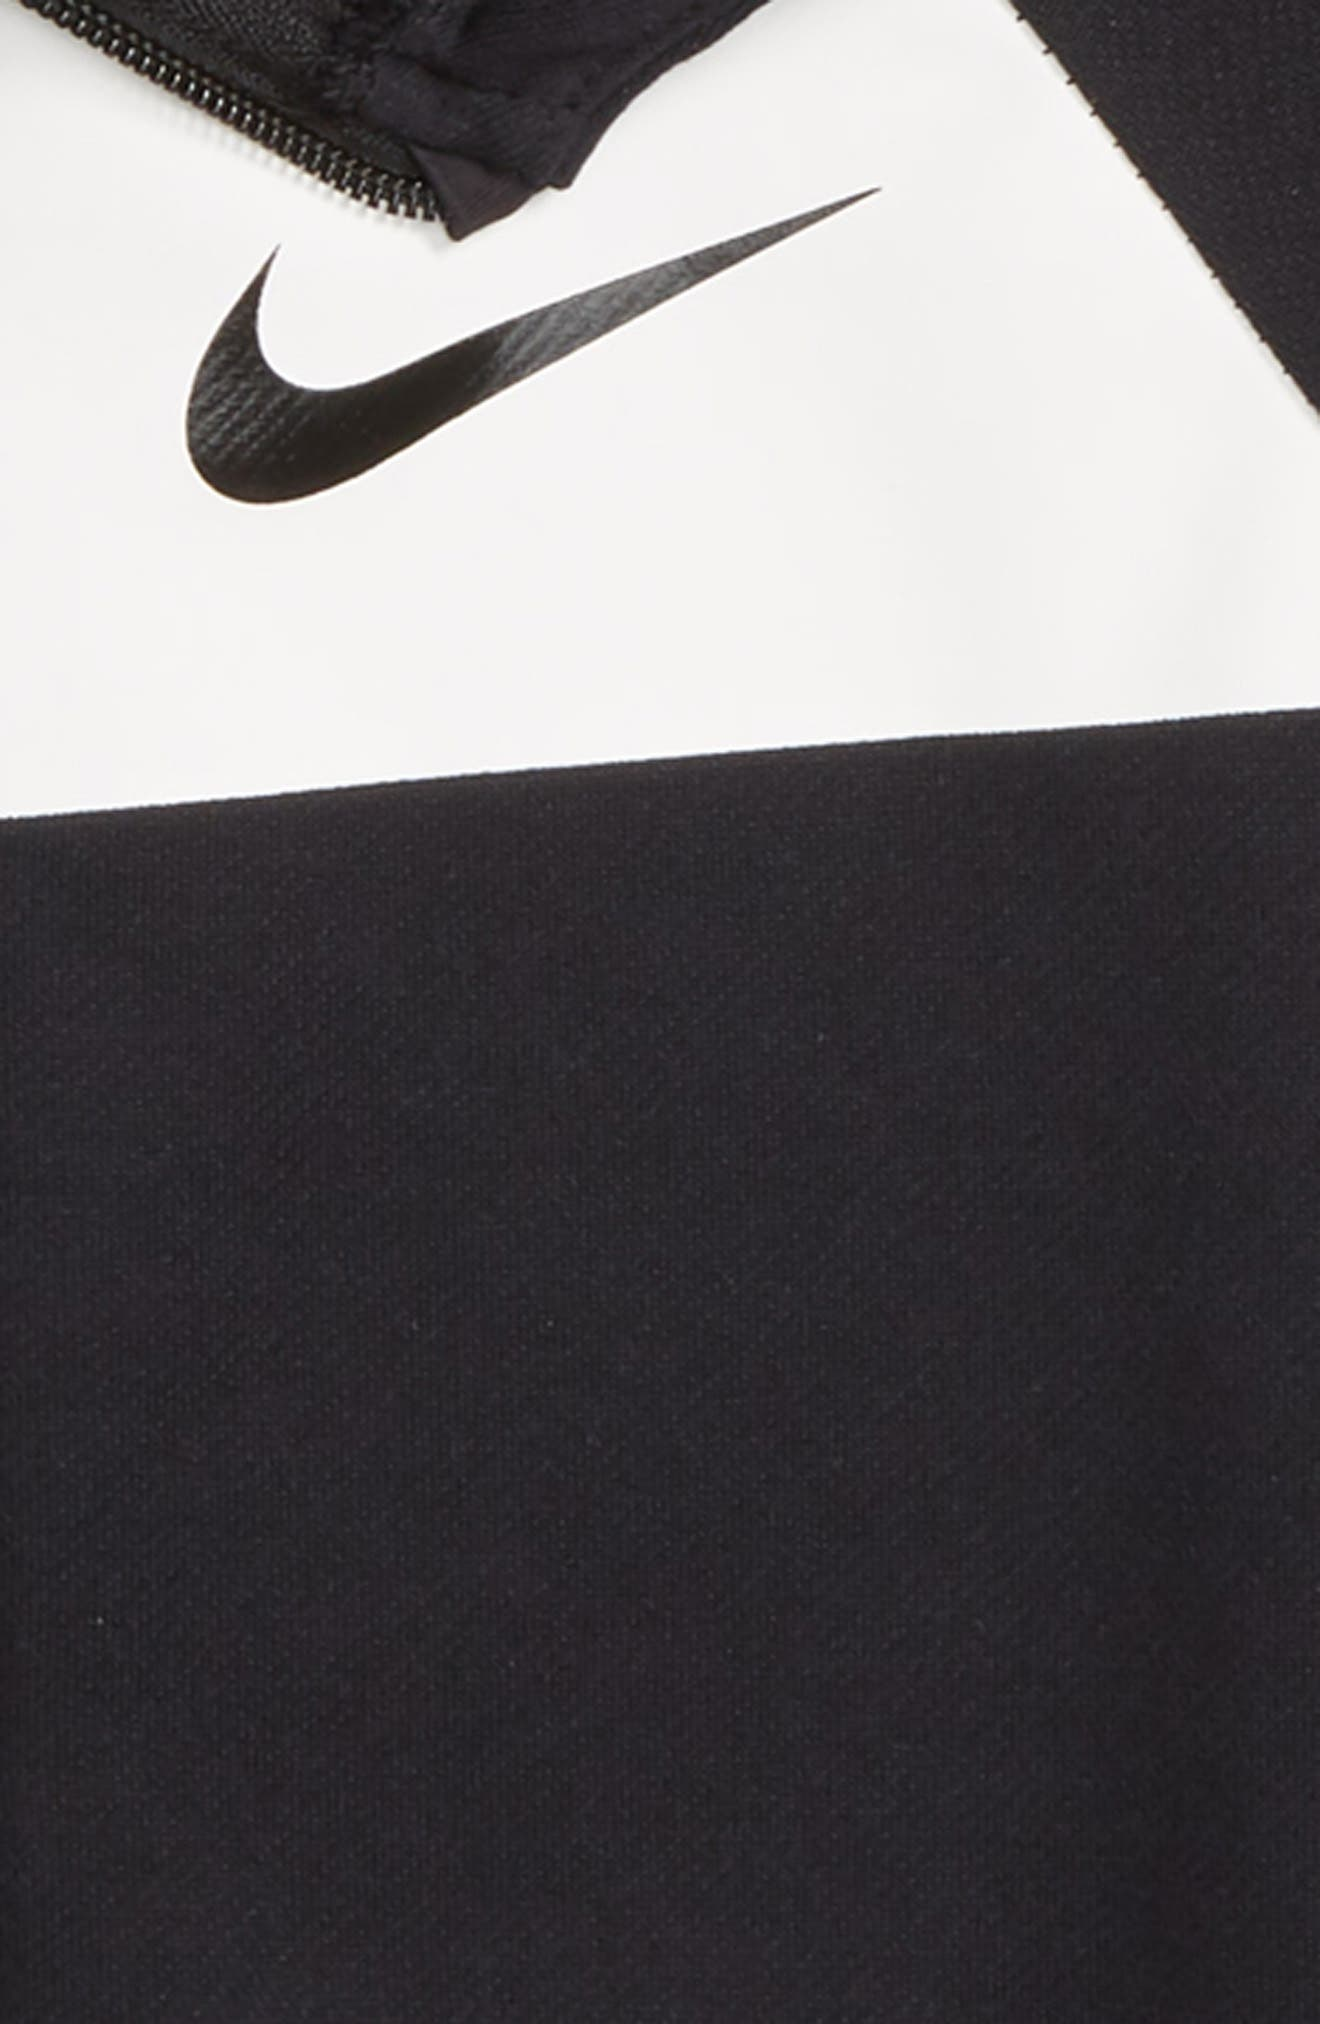 NIKE, Dry Full Zip Hoodie, Alternate thumbnail 2, color, BLACK/ WHITE